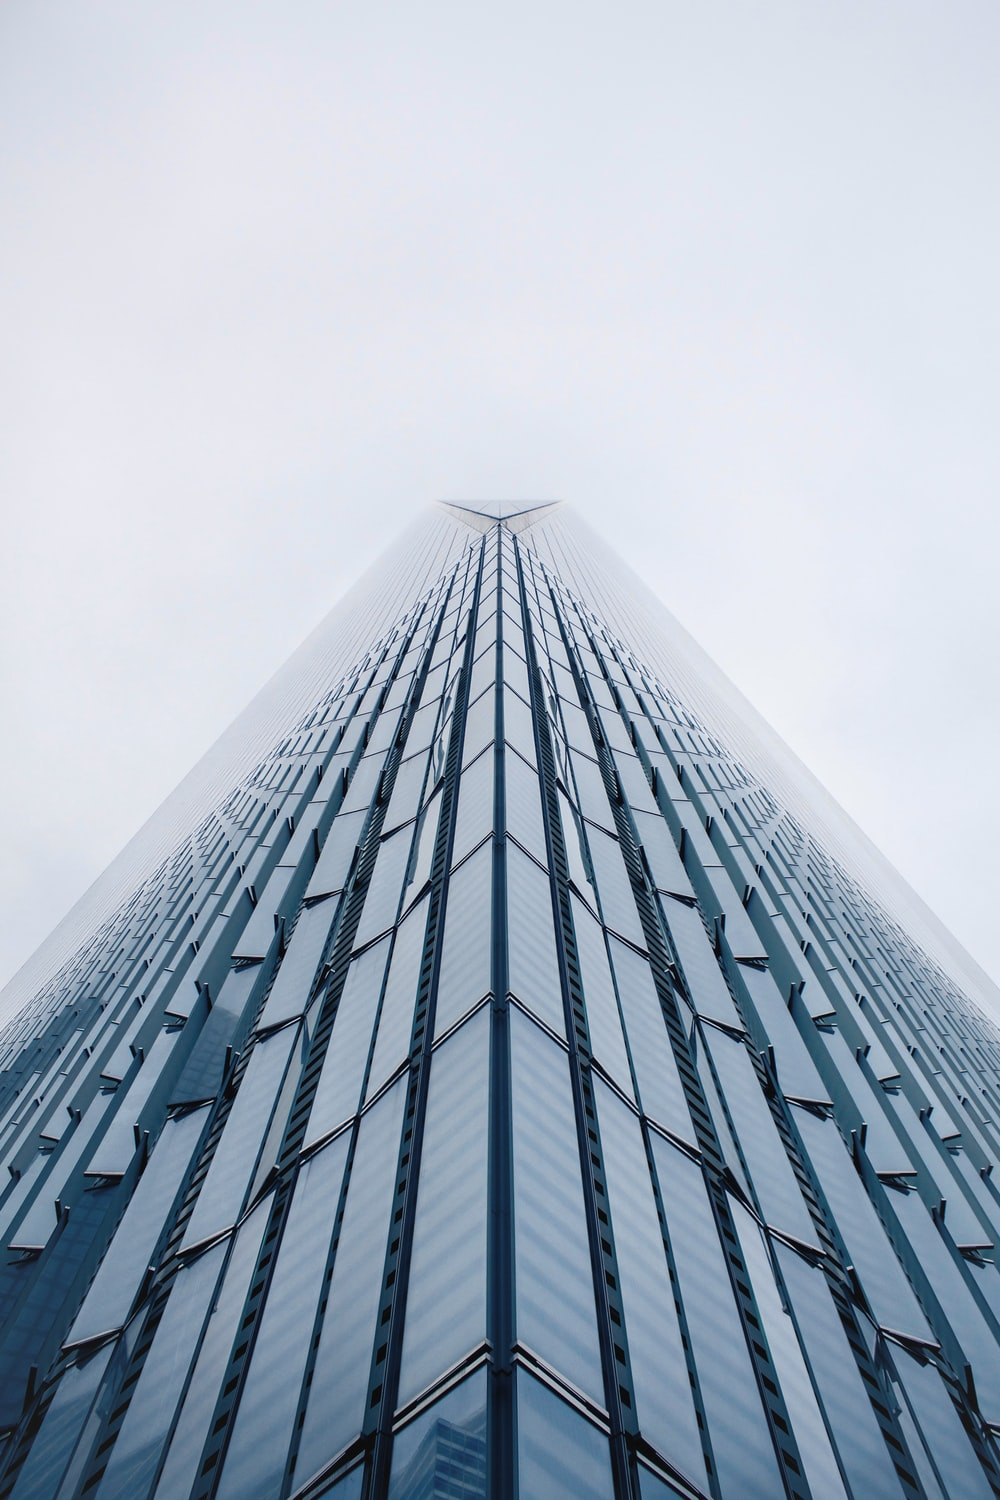 500+ One World Trade Center Pictures | Download Free Images